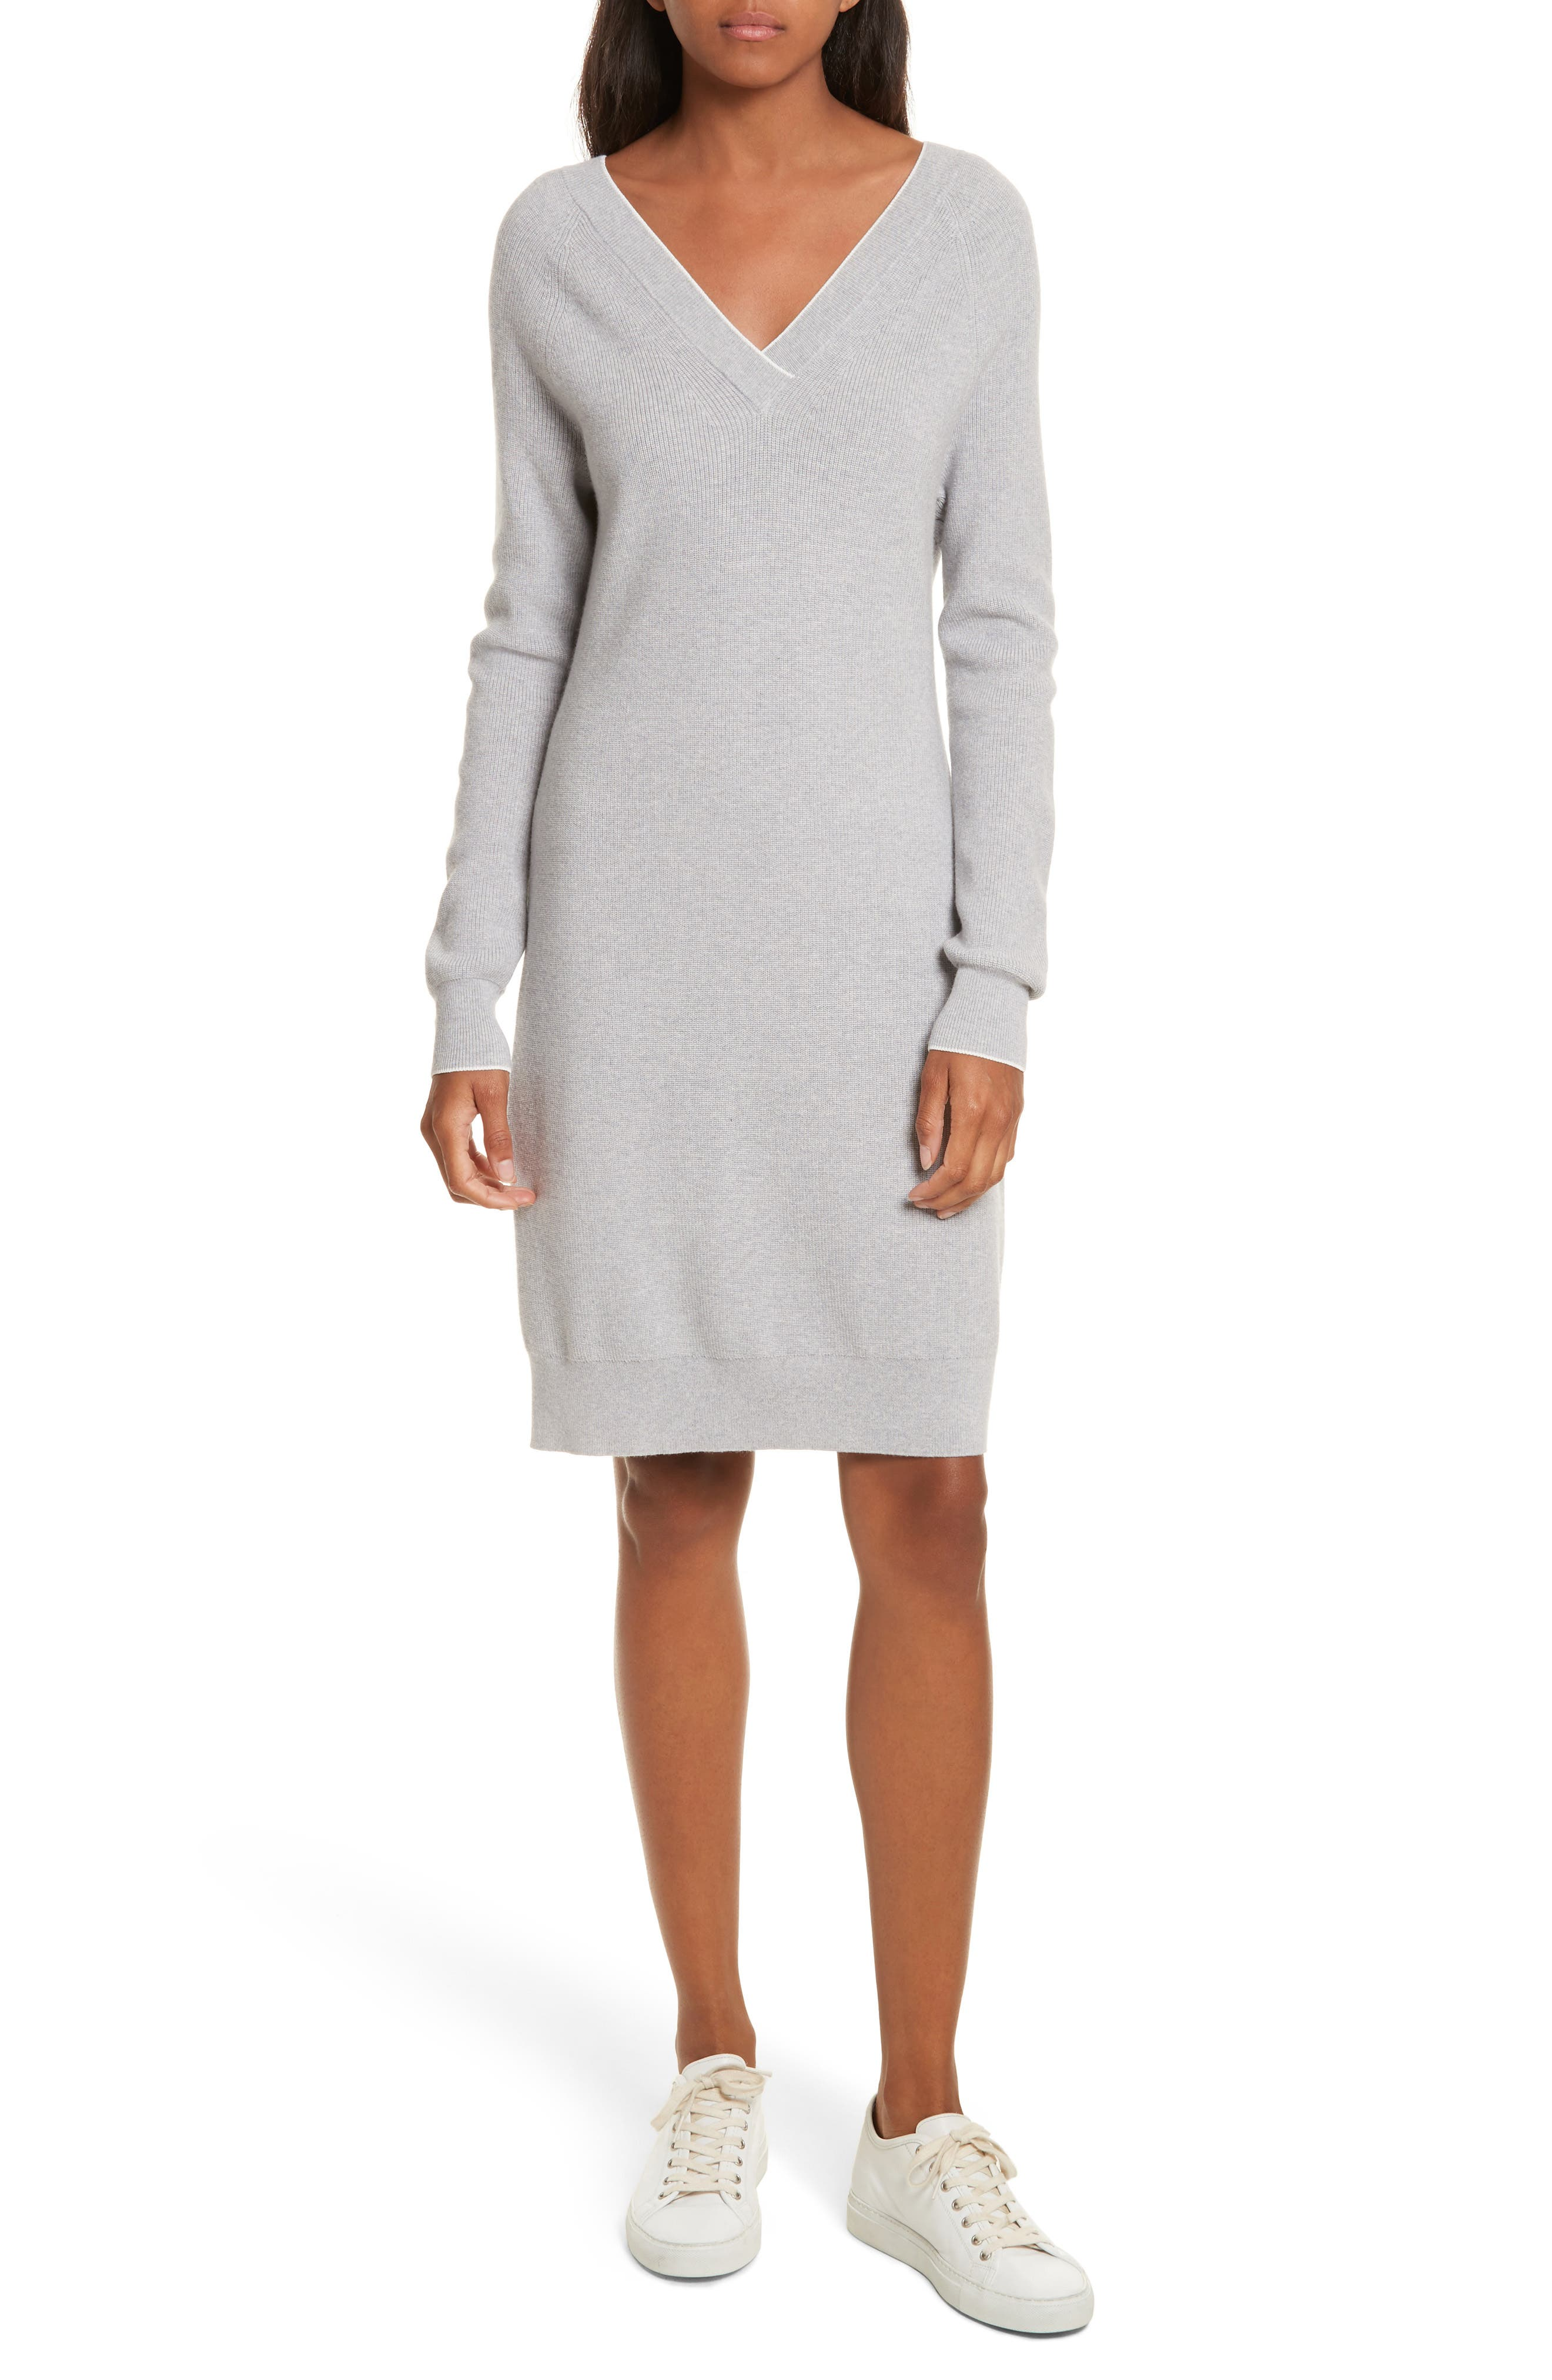 GREY Jason Wu Wool Blend Sweater Dress